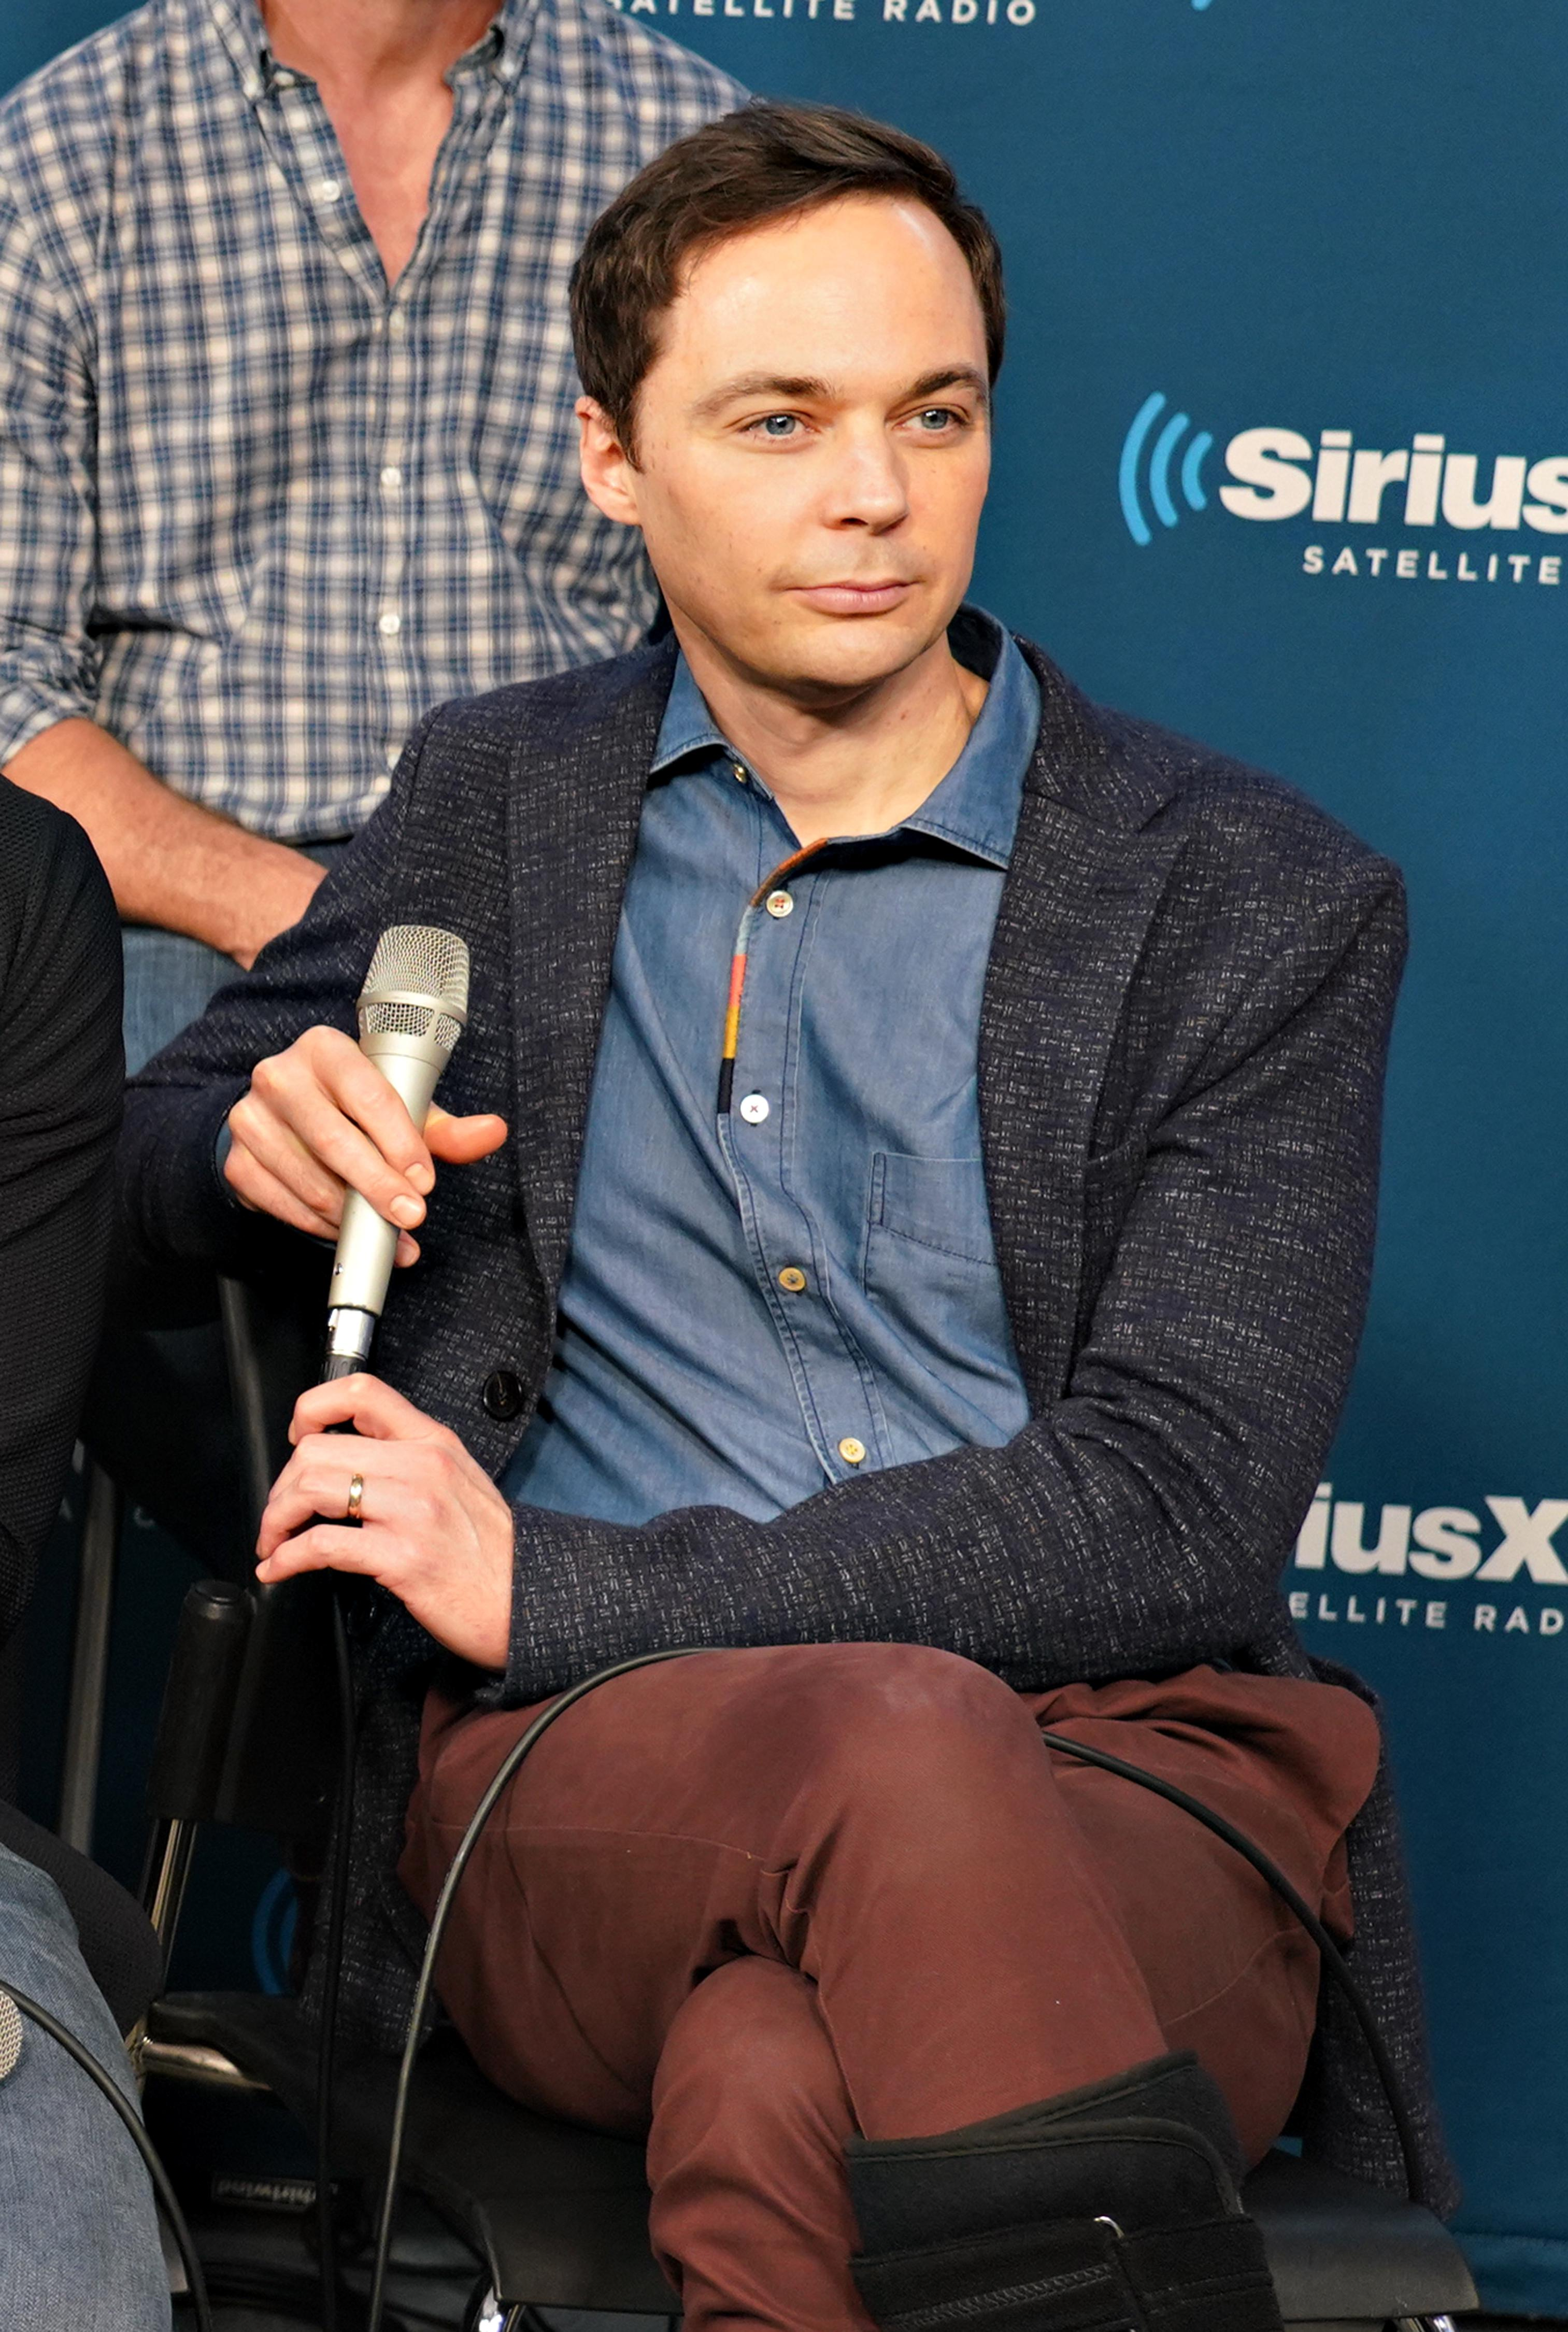 NEW YORK, NY - JUNE 14:  Actor Jim Parsons takes part in SiriusXM's Town Hall with the cast of 'Boys In The Band' hosted by Andy Cohen at SiriusXM Studios on June 14, 2018 in New York City.  (Photo by Cindy Ord/Getty Images for SiriusXM)